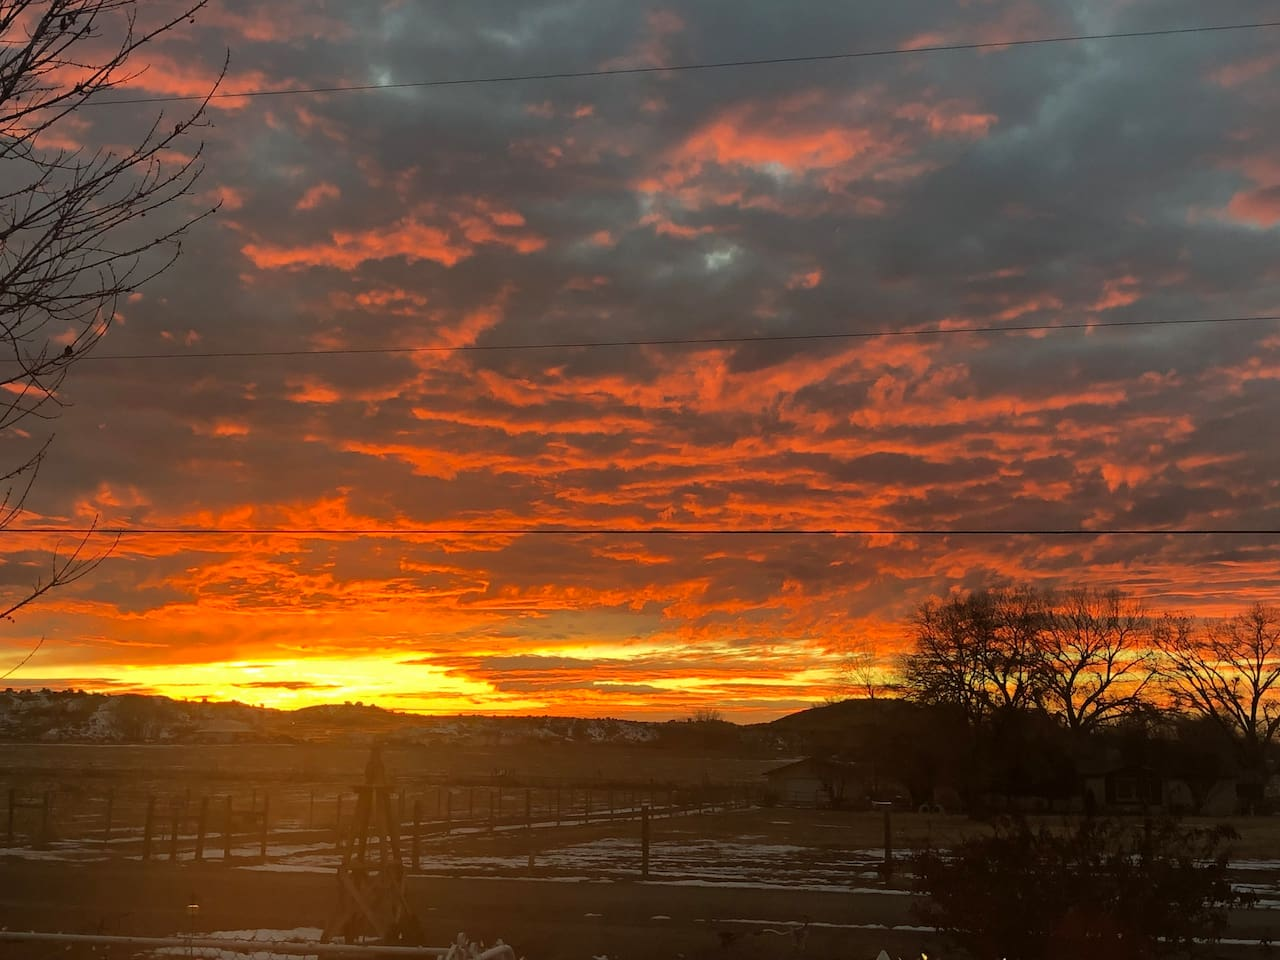 Beautiful sunsets and sunrises from your decks (handicap accessible) Horse Stalls available for additional fee.  3 Bedrooms 2 Full Baths. (Jetted Bath Tub)  Direct TV and Internet included.